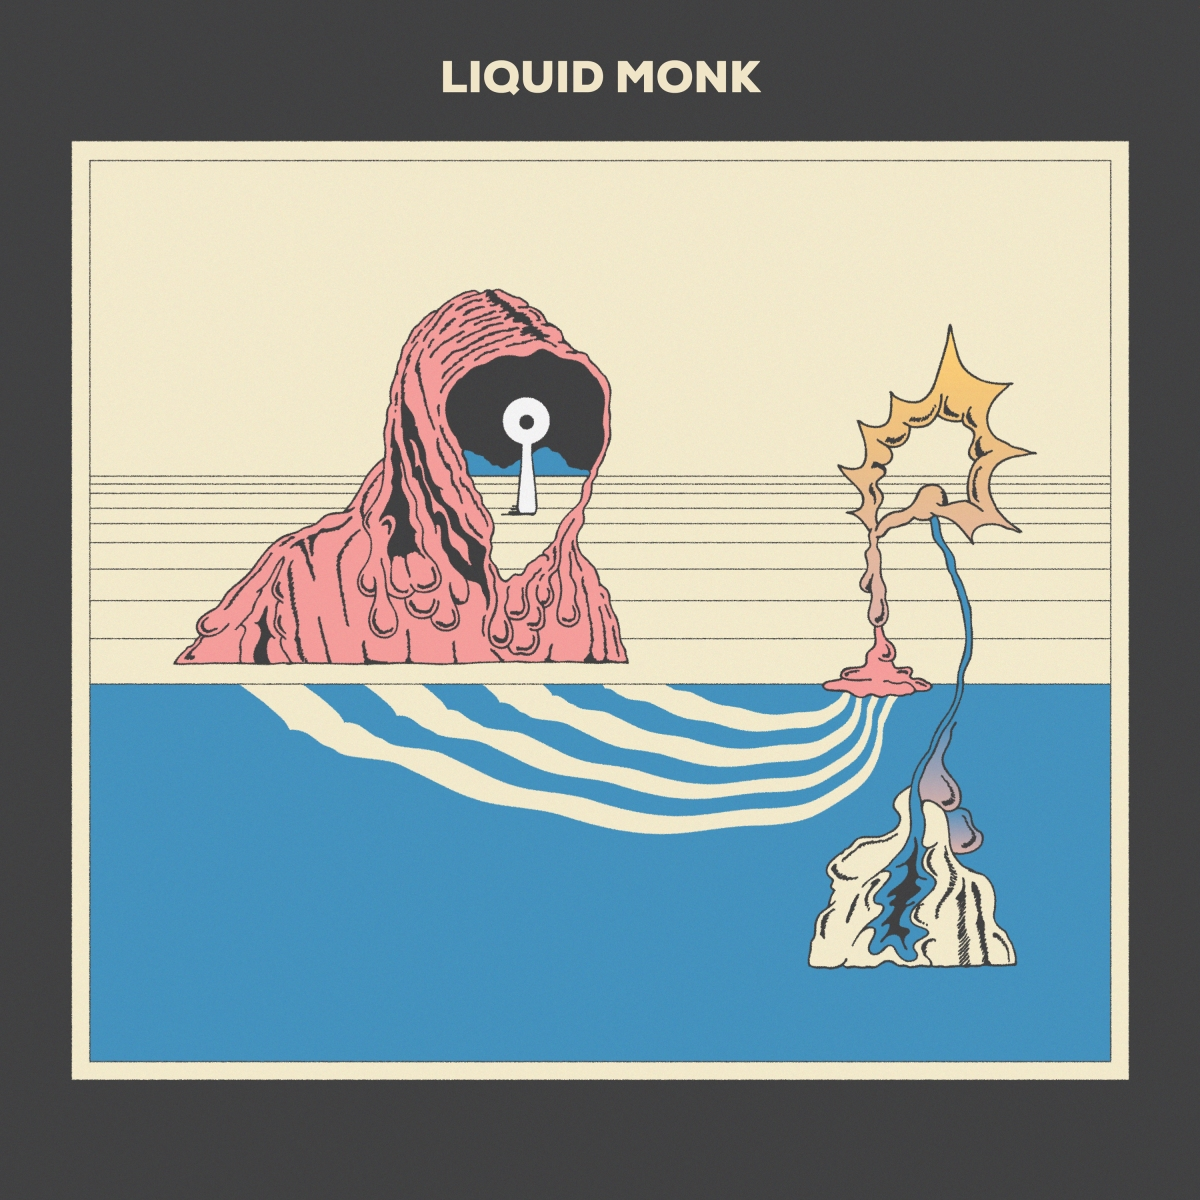 "NEW EP: DEBUTING THEIR SELF-TITLED ALBUM LISTEN TO THE ""LIQUID MONK"" LP"